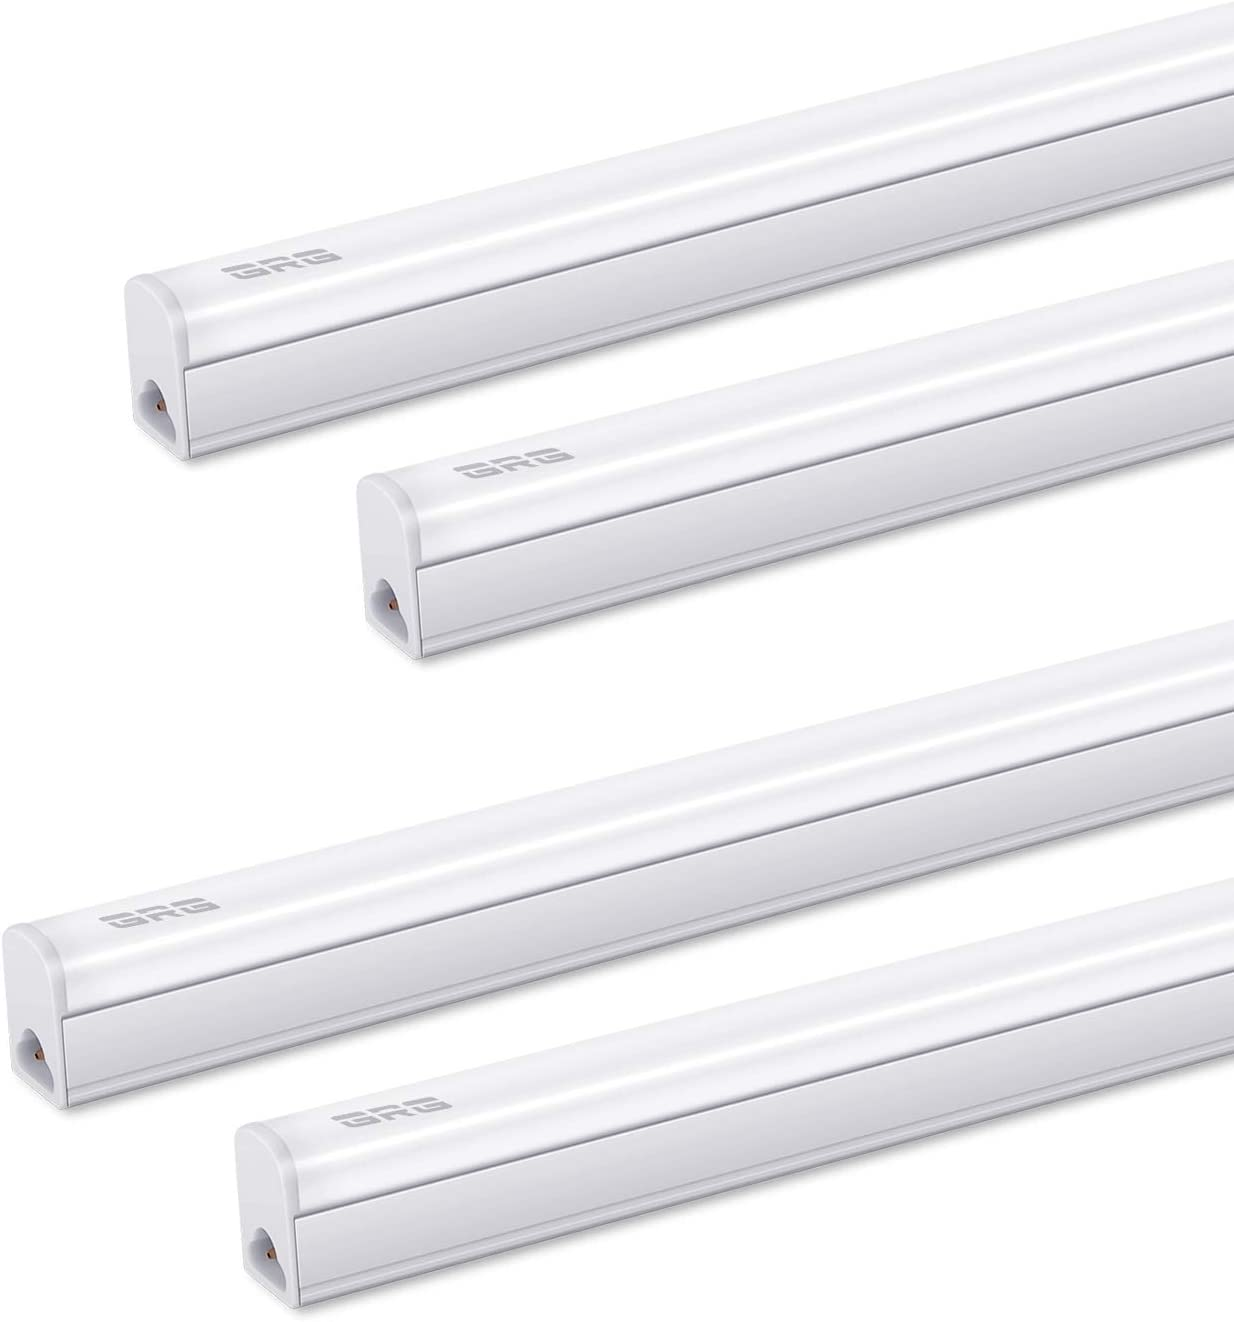 Pack of 4 GRG LED T5 Integrated Single Fixture, 3Ft 15W 1650lm 6500K, Linkable Utility Shop Light, Garage Light, LED Ceiling Under Cabinet Light, T5 T8 Fluorescent Tube Light Fixture Replacement